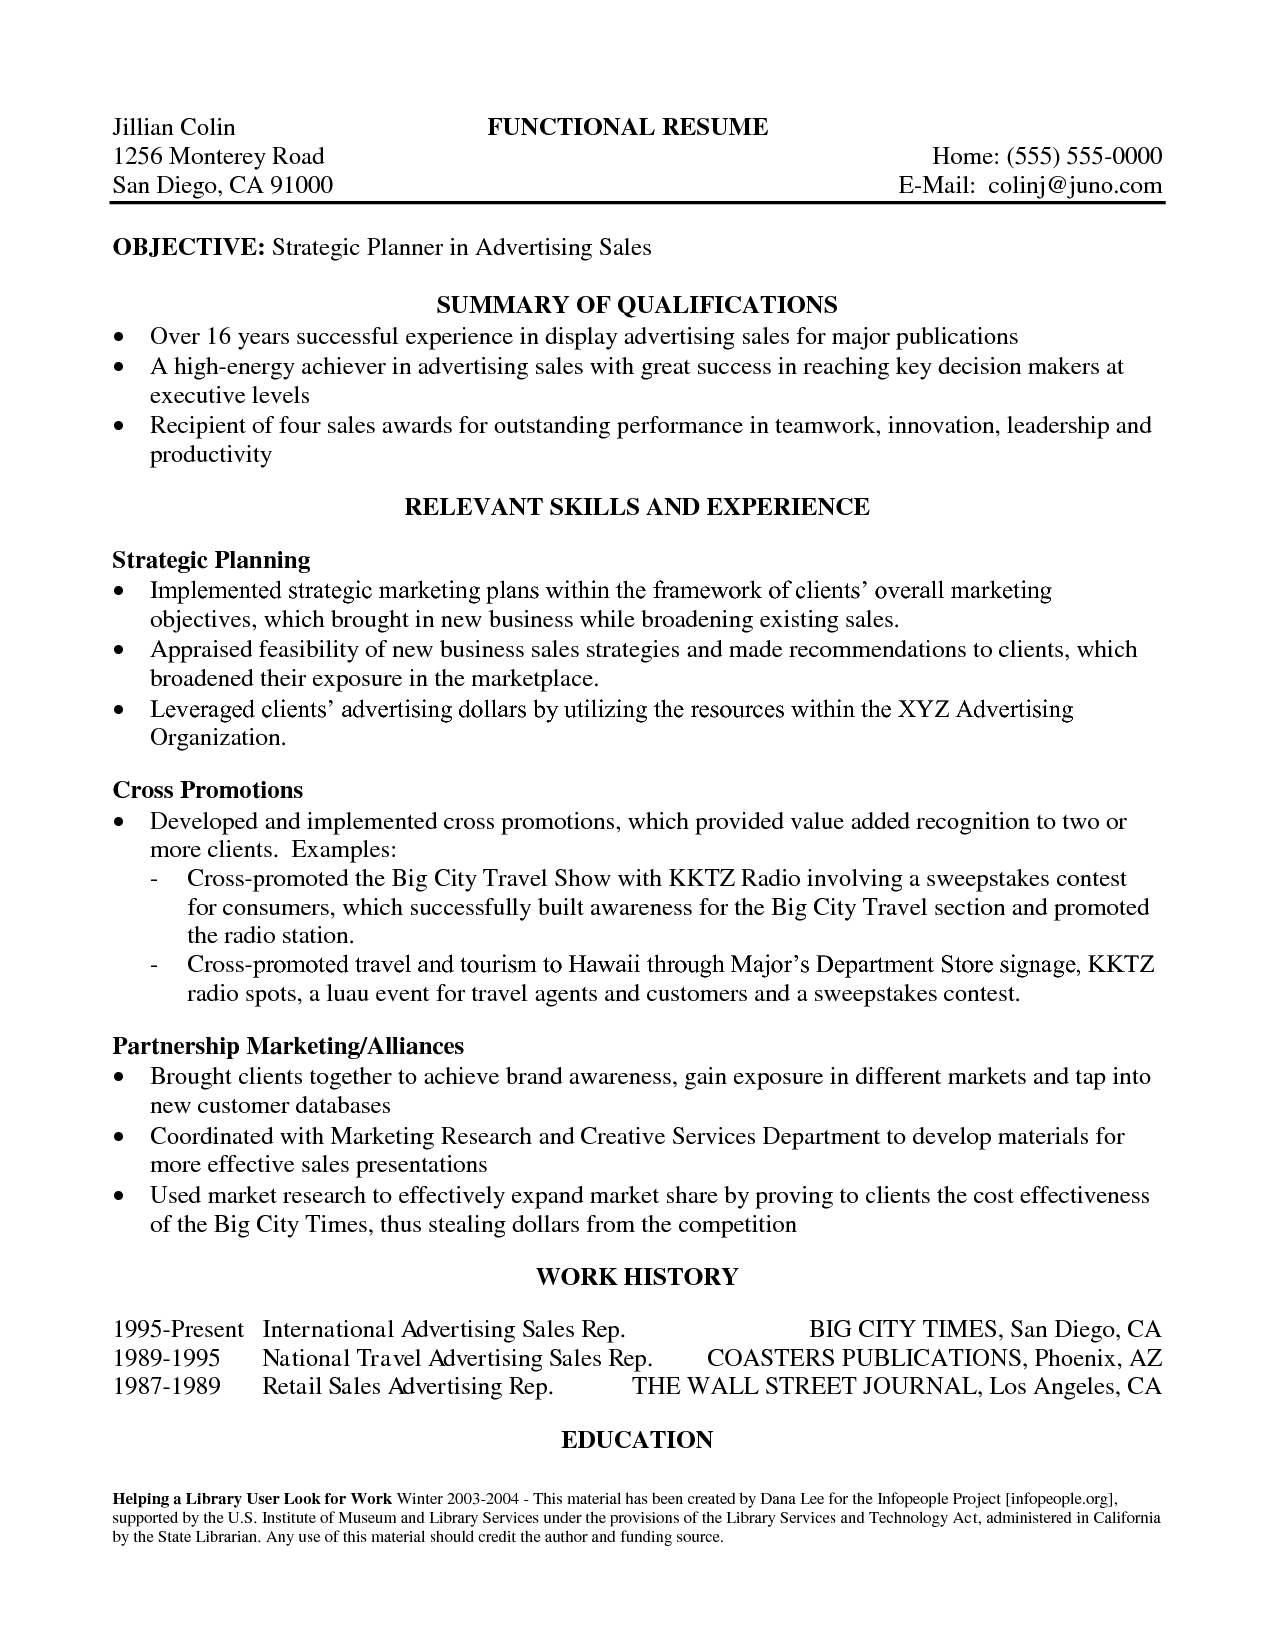 Example Of A Summary For A Resume Extraordinary Resume Examples Summary  Resume Examples  Pinterest  Resume Examples